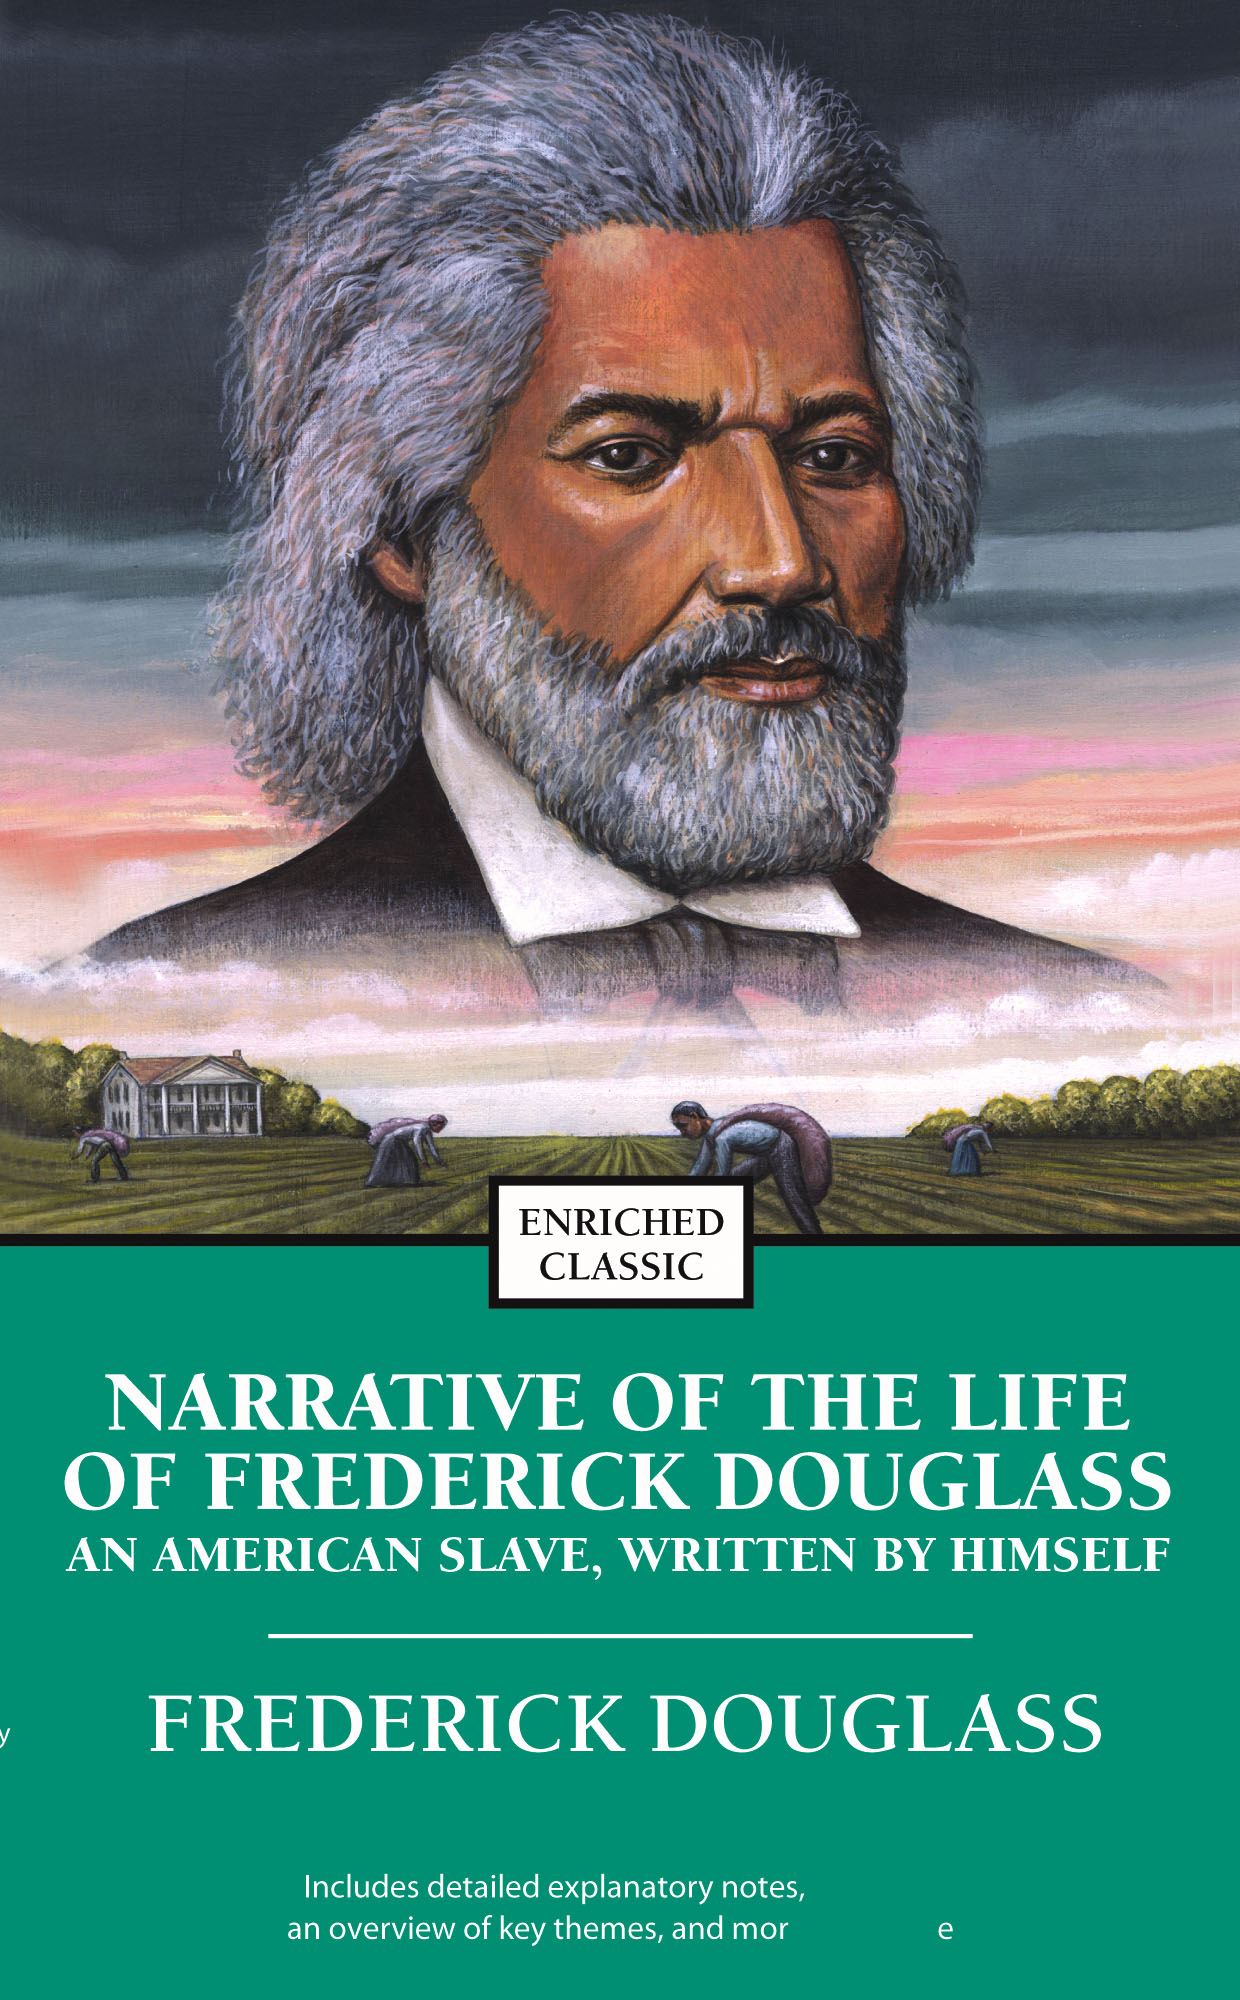 an introduction to the narrative of frederick douglass Being deeply affected by frederick douglass's narrative, i wrote my term paper   wrote an extra introduction to the narrative changing both the form and.